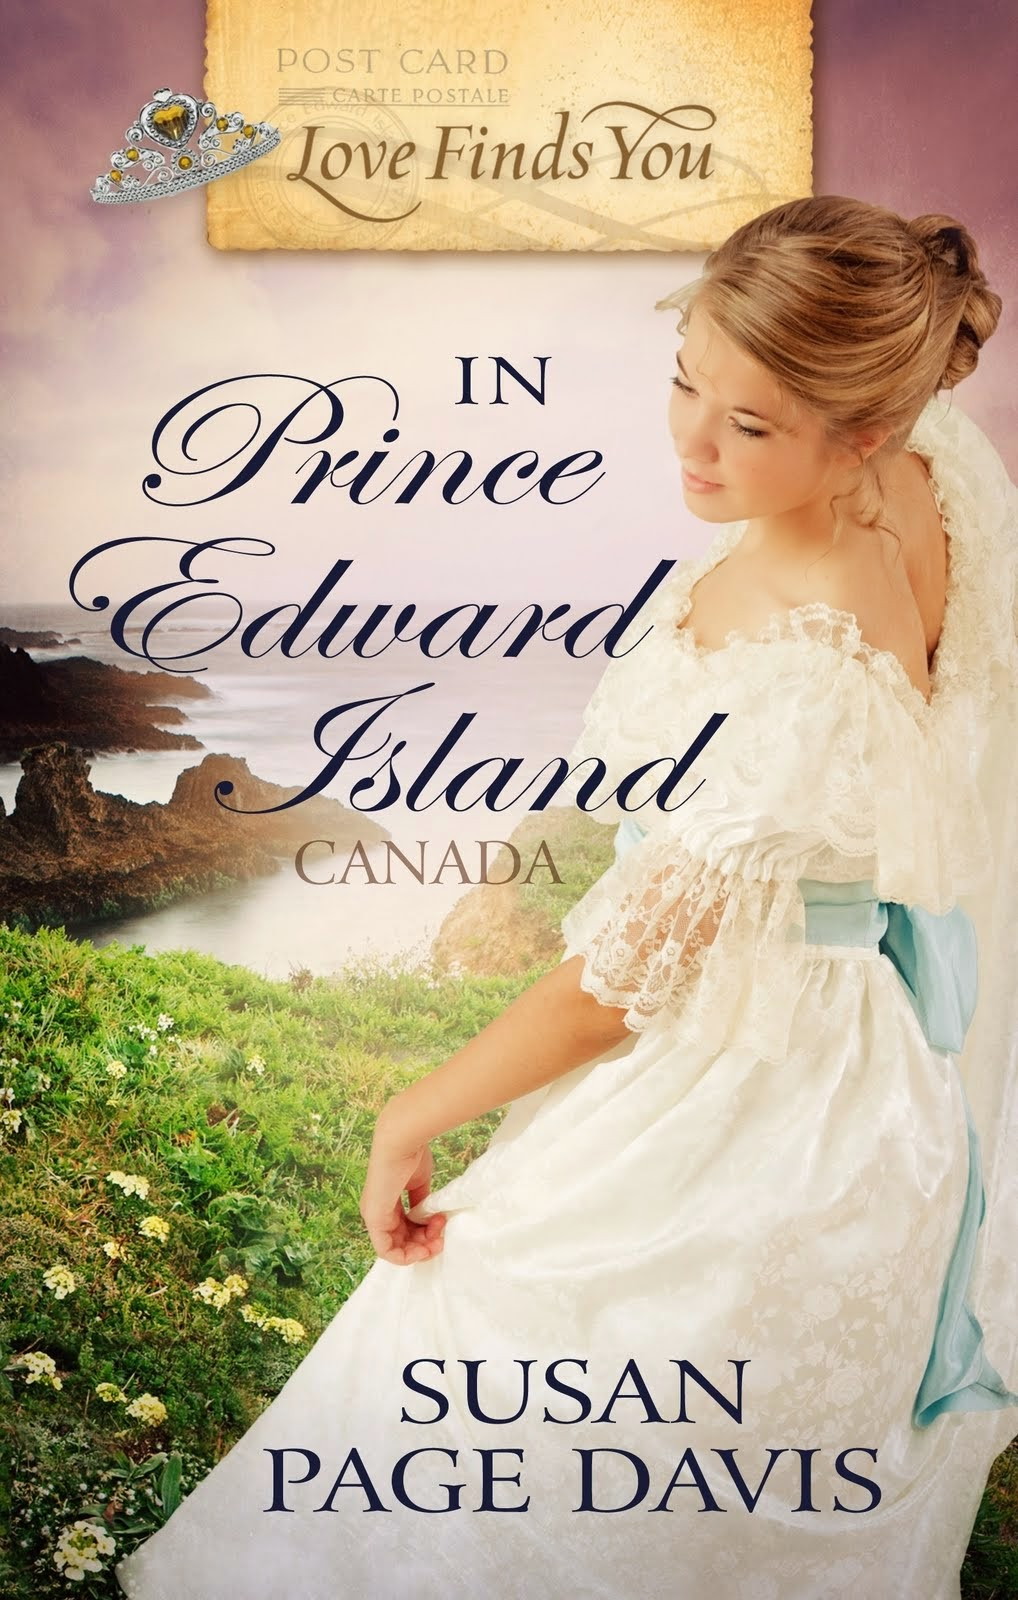 http://discover.halifaxpubliclibraries.ca/?q=title:love%20finds%20you%20in%20prince%20edward%20island%20canada